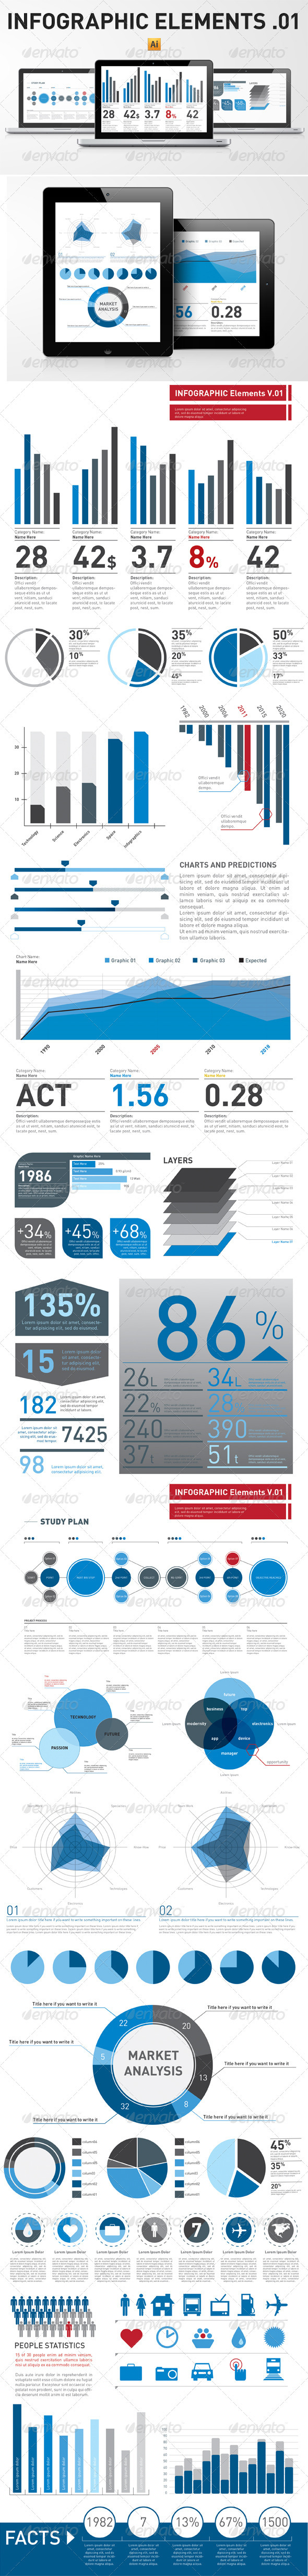 Infographic Elements Template Pack 01 - Infographics